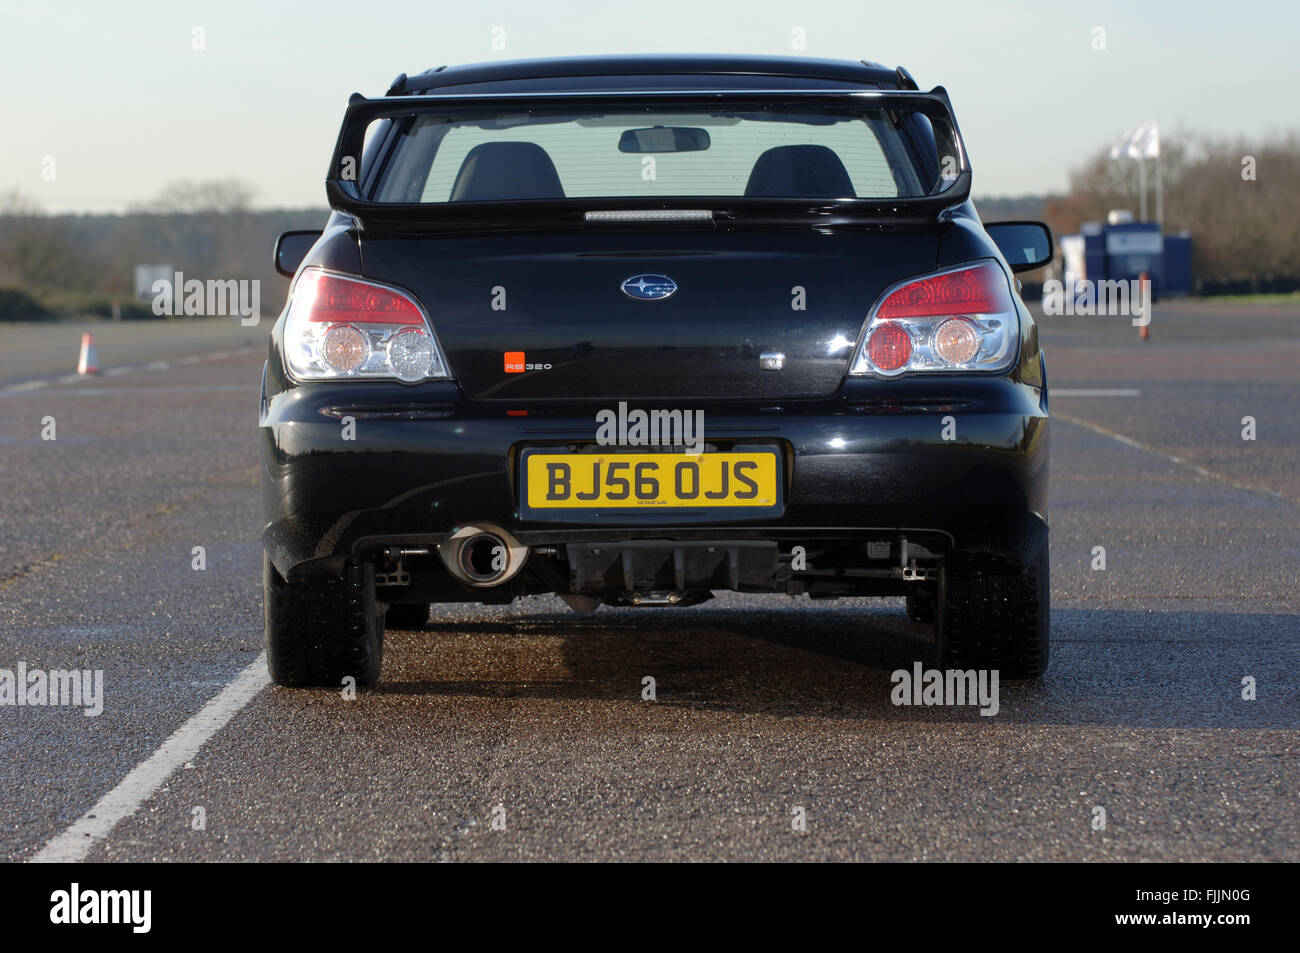 4x4 Sports Cars 2006 Rb320 Special Edition Subaru Impreza 4x4 Sports Car